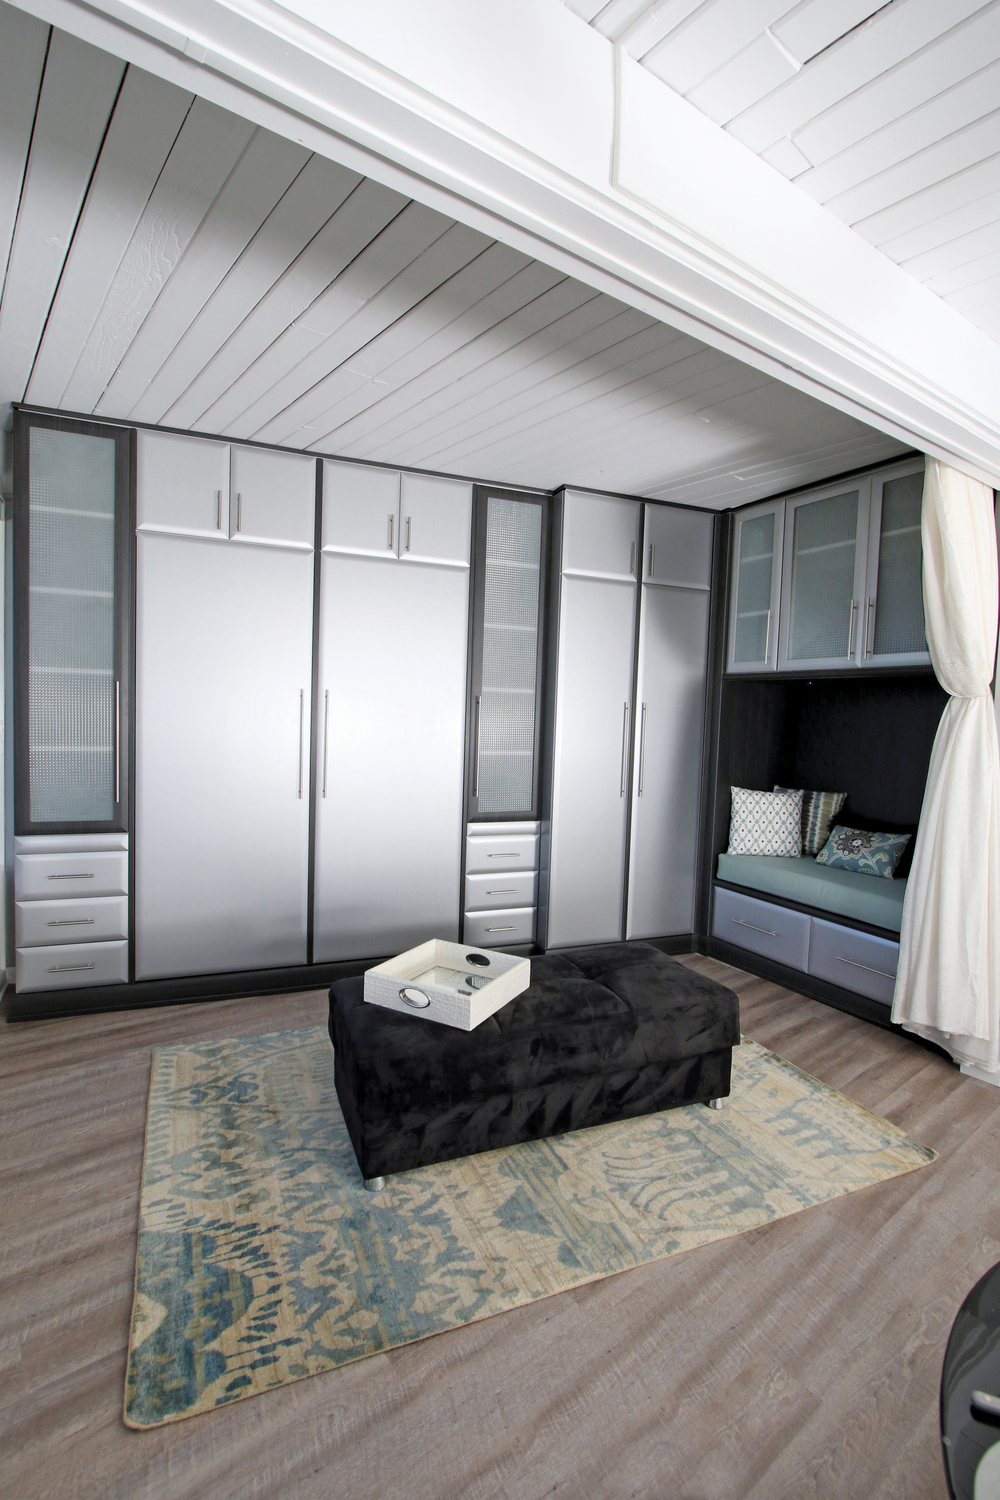 Every inch in this less than 600 square feet is maximized for storage. Closets, bed, drawers and TV where there is even a niche for reading and relaxing.